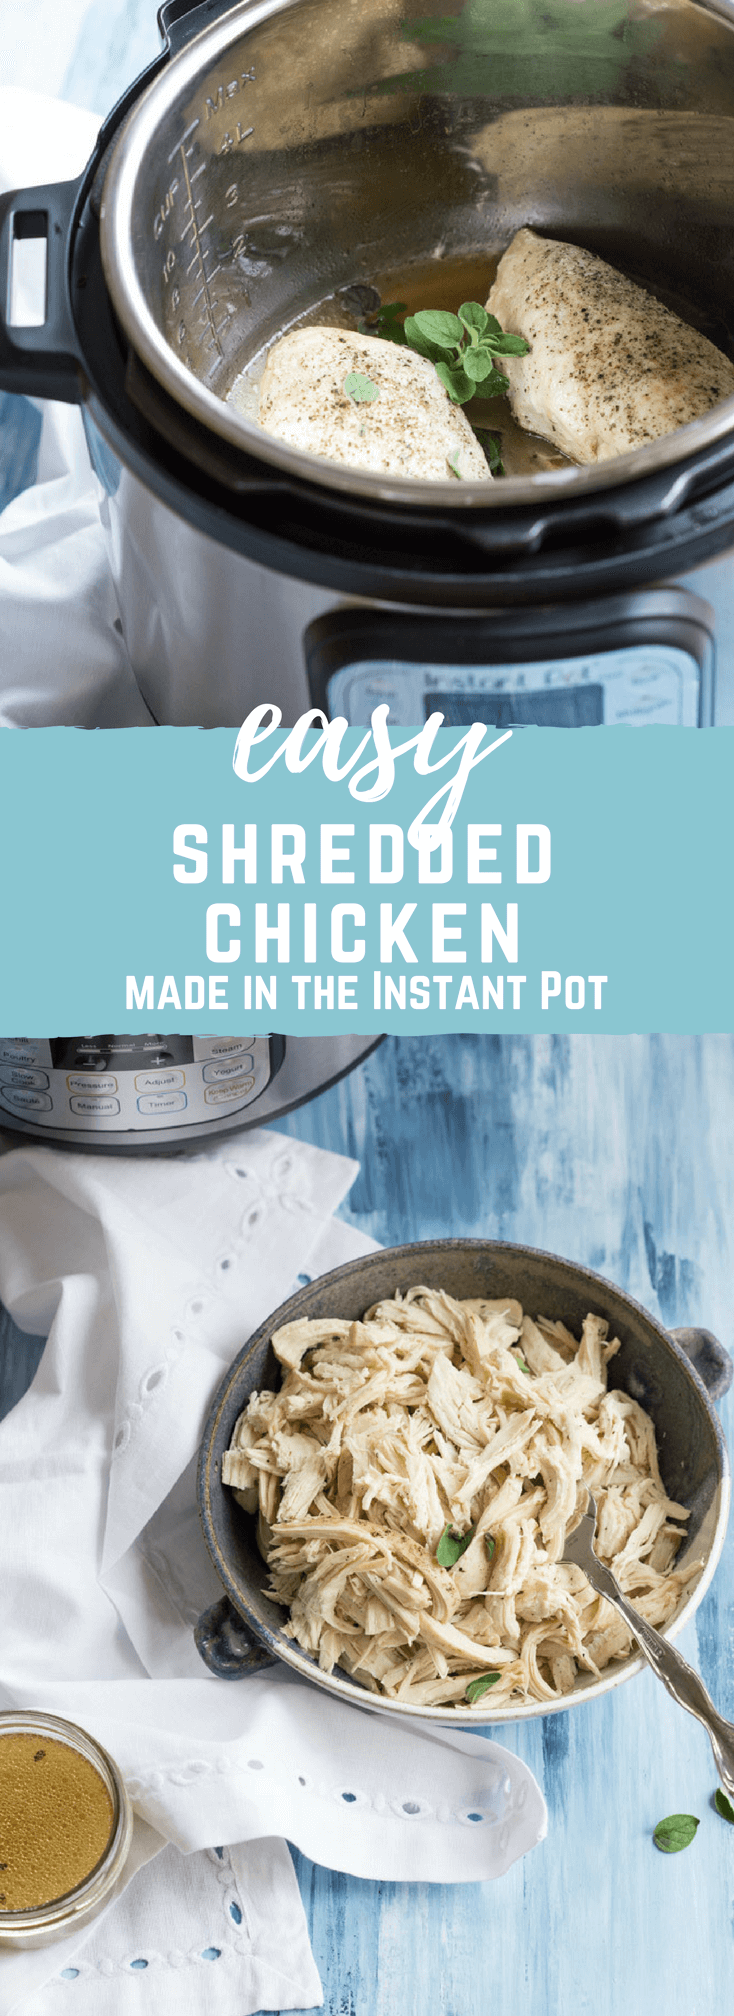 Instant Pot Easy Shredded Chicken How To Cook Chicken In The Instant Pot